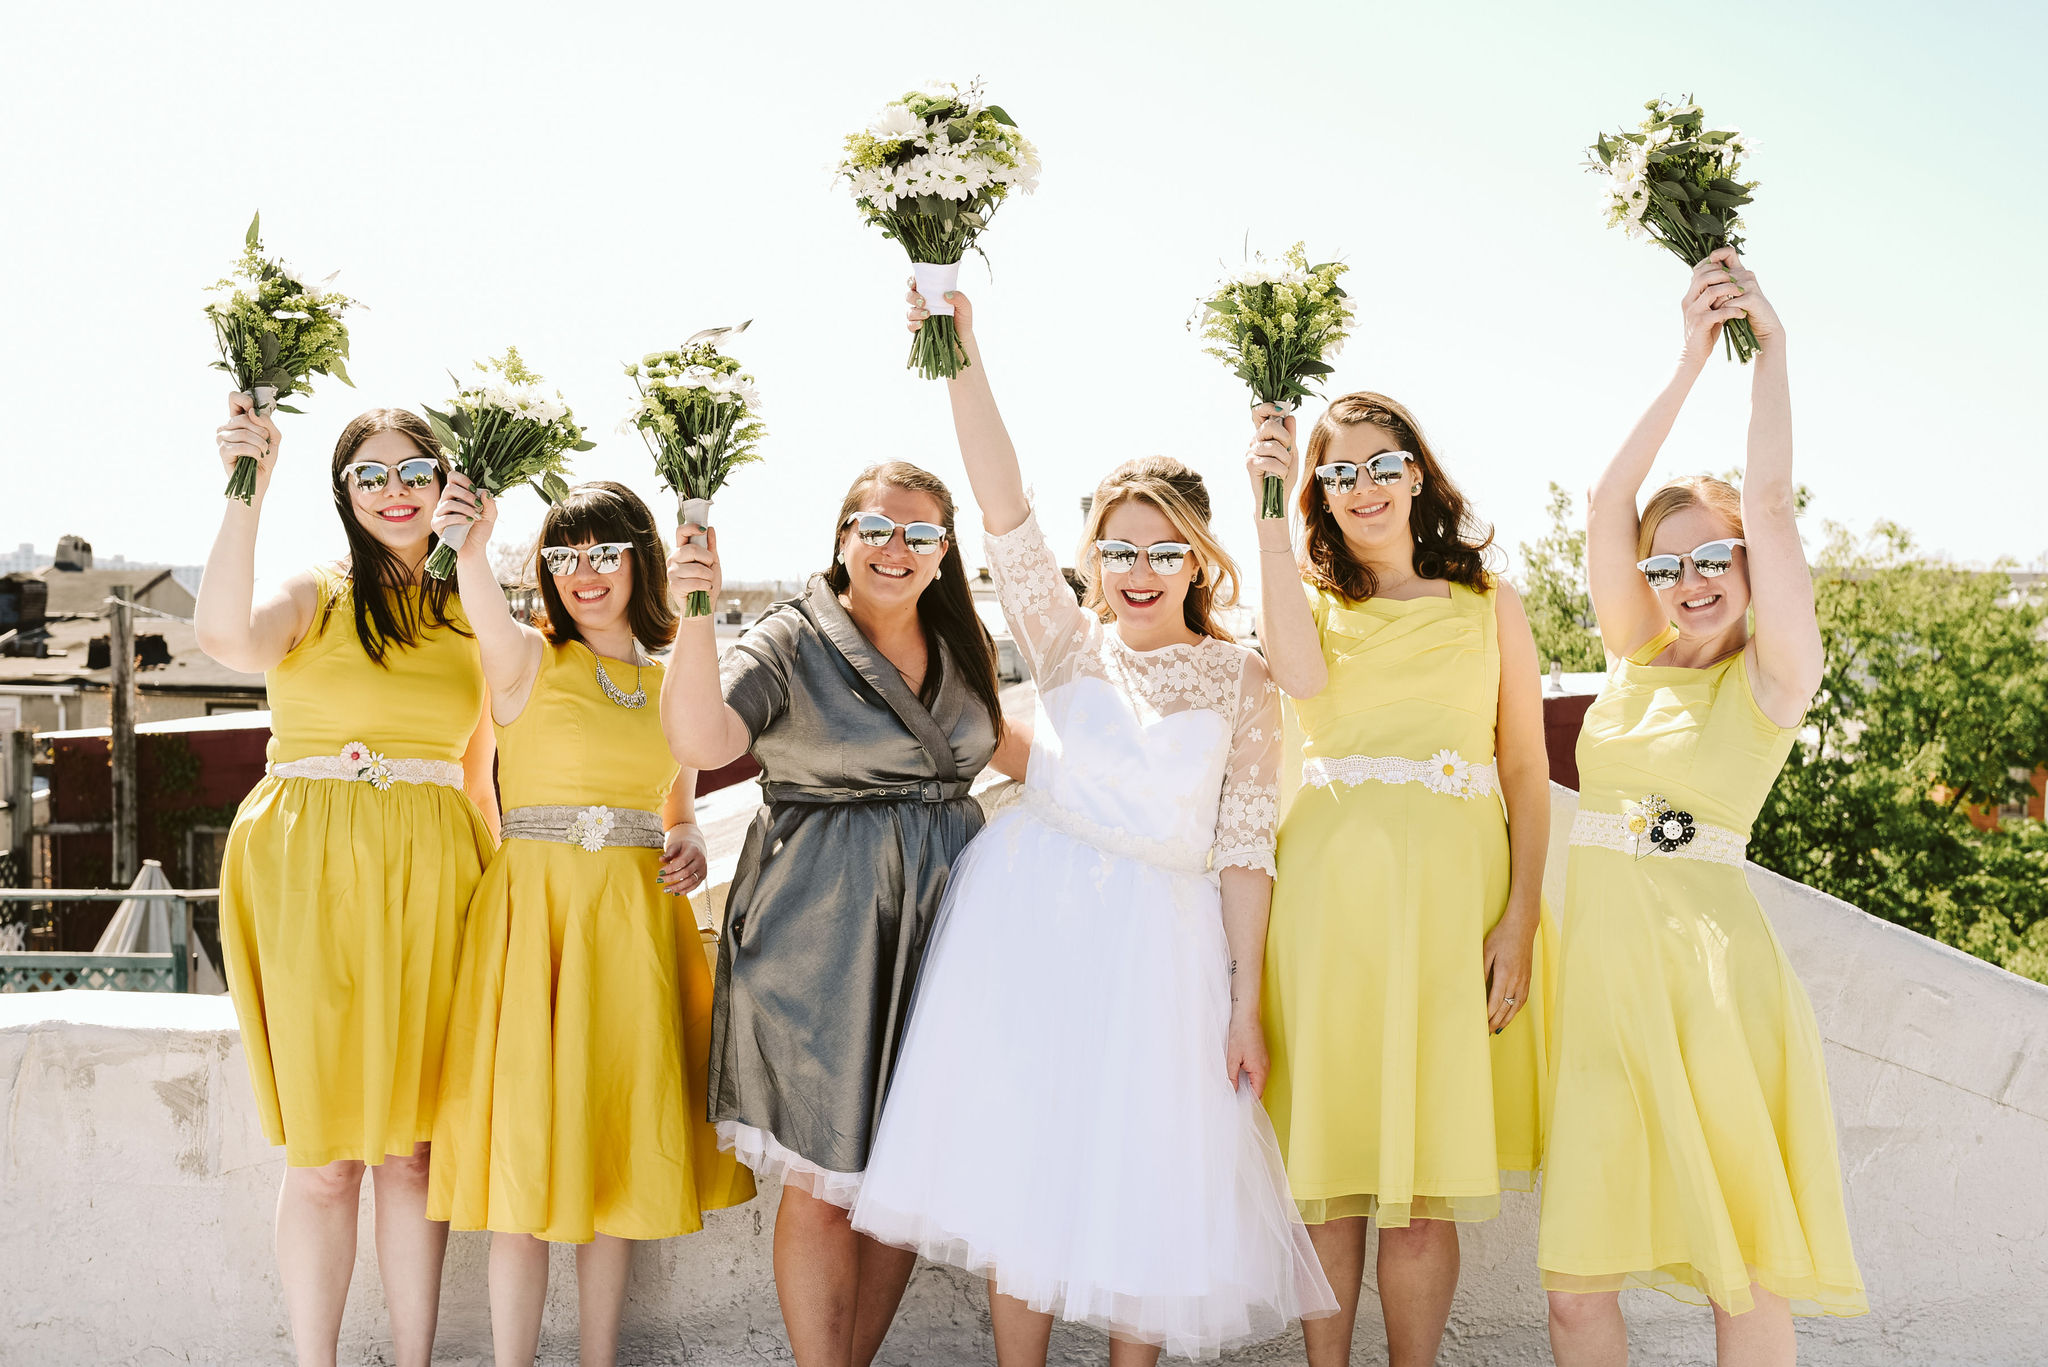 Baltimore, Church Wedding, Maryland Wedding Photographer, Vintage, Classic, 50s Style, Bride with Bridesmaids, White Daisies, White Sunglasses